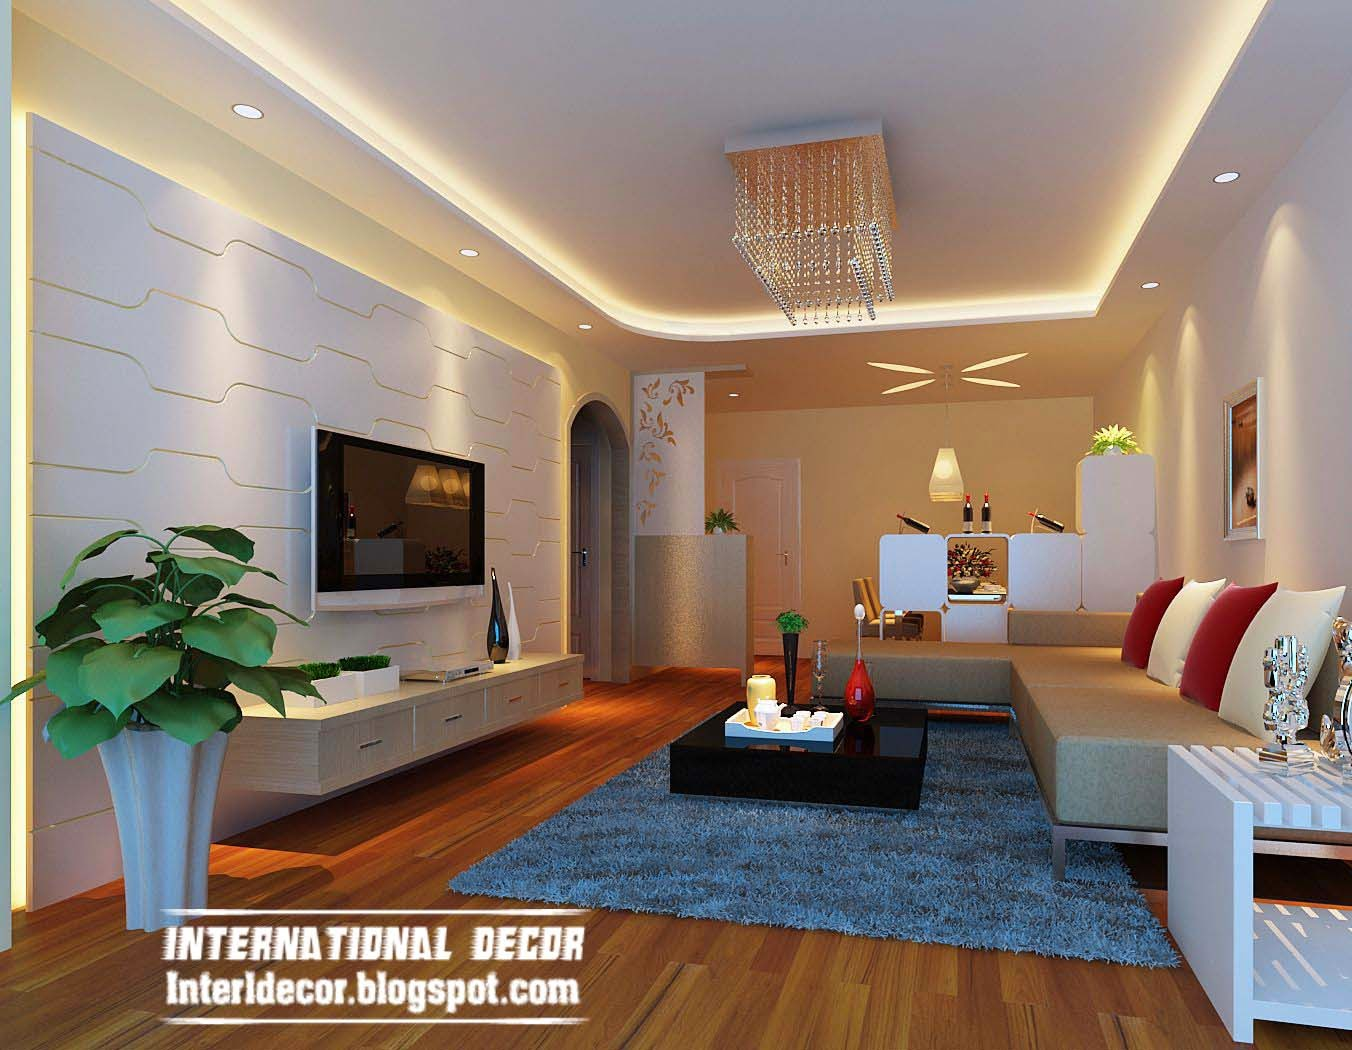 Interior design 2014 top 10 suspended ceiling tiles for Interior design styles living room 2015